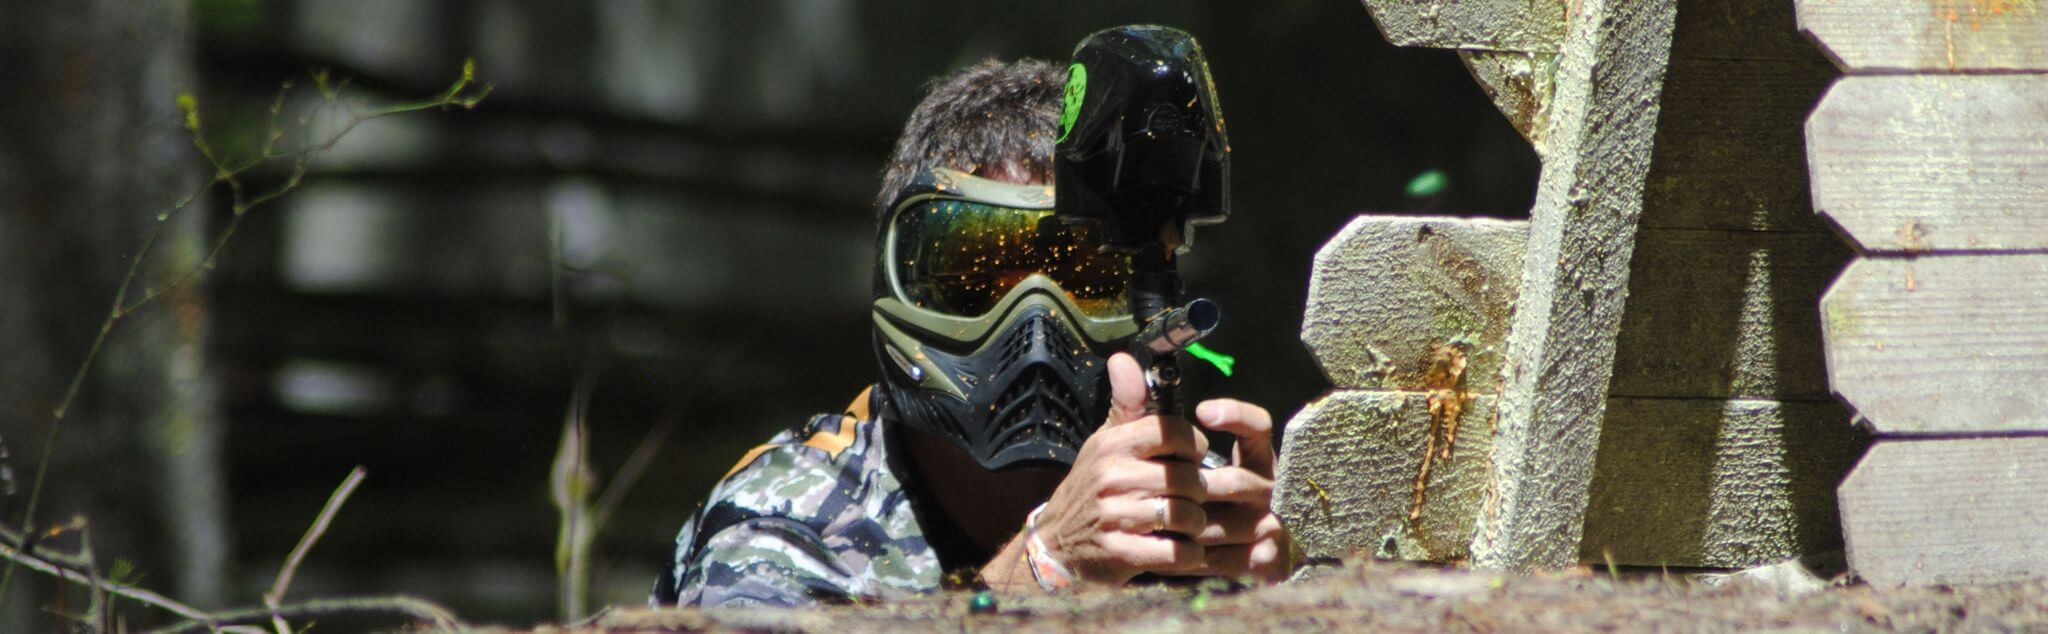 Paintball in Antrim